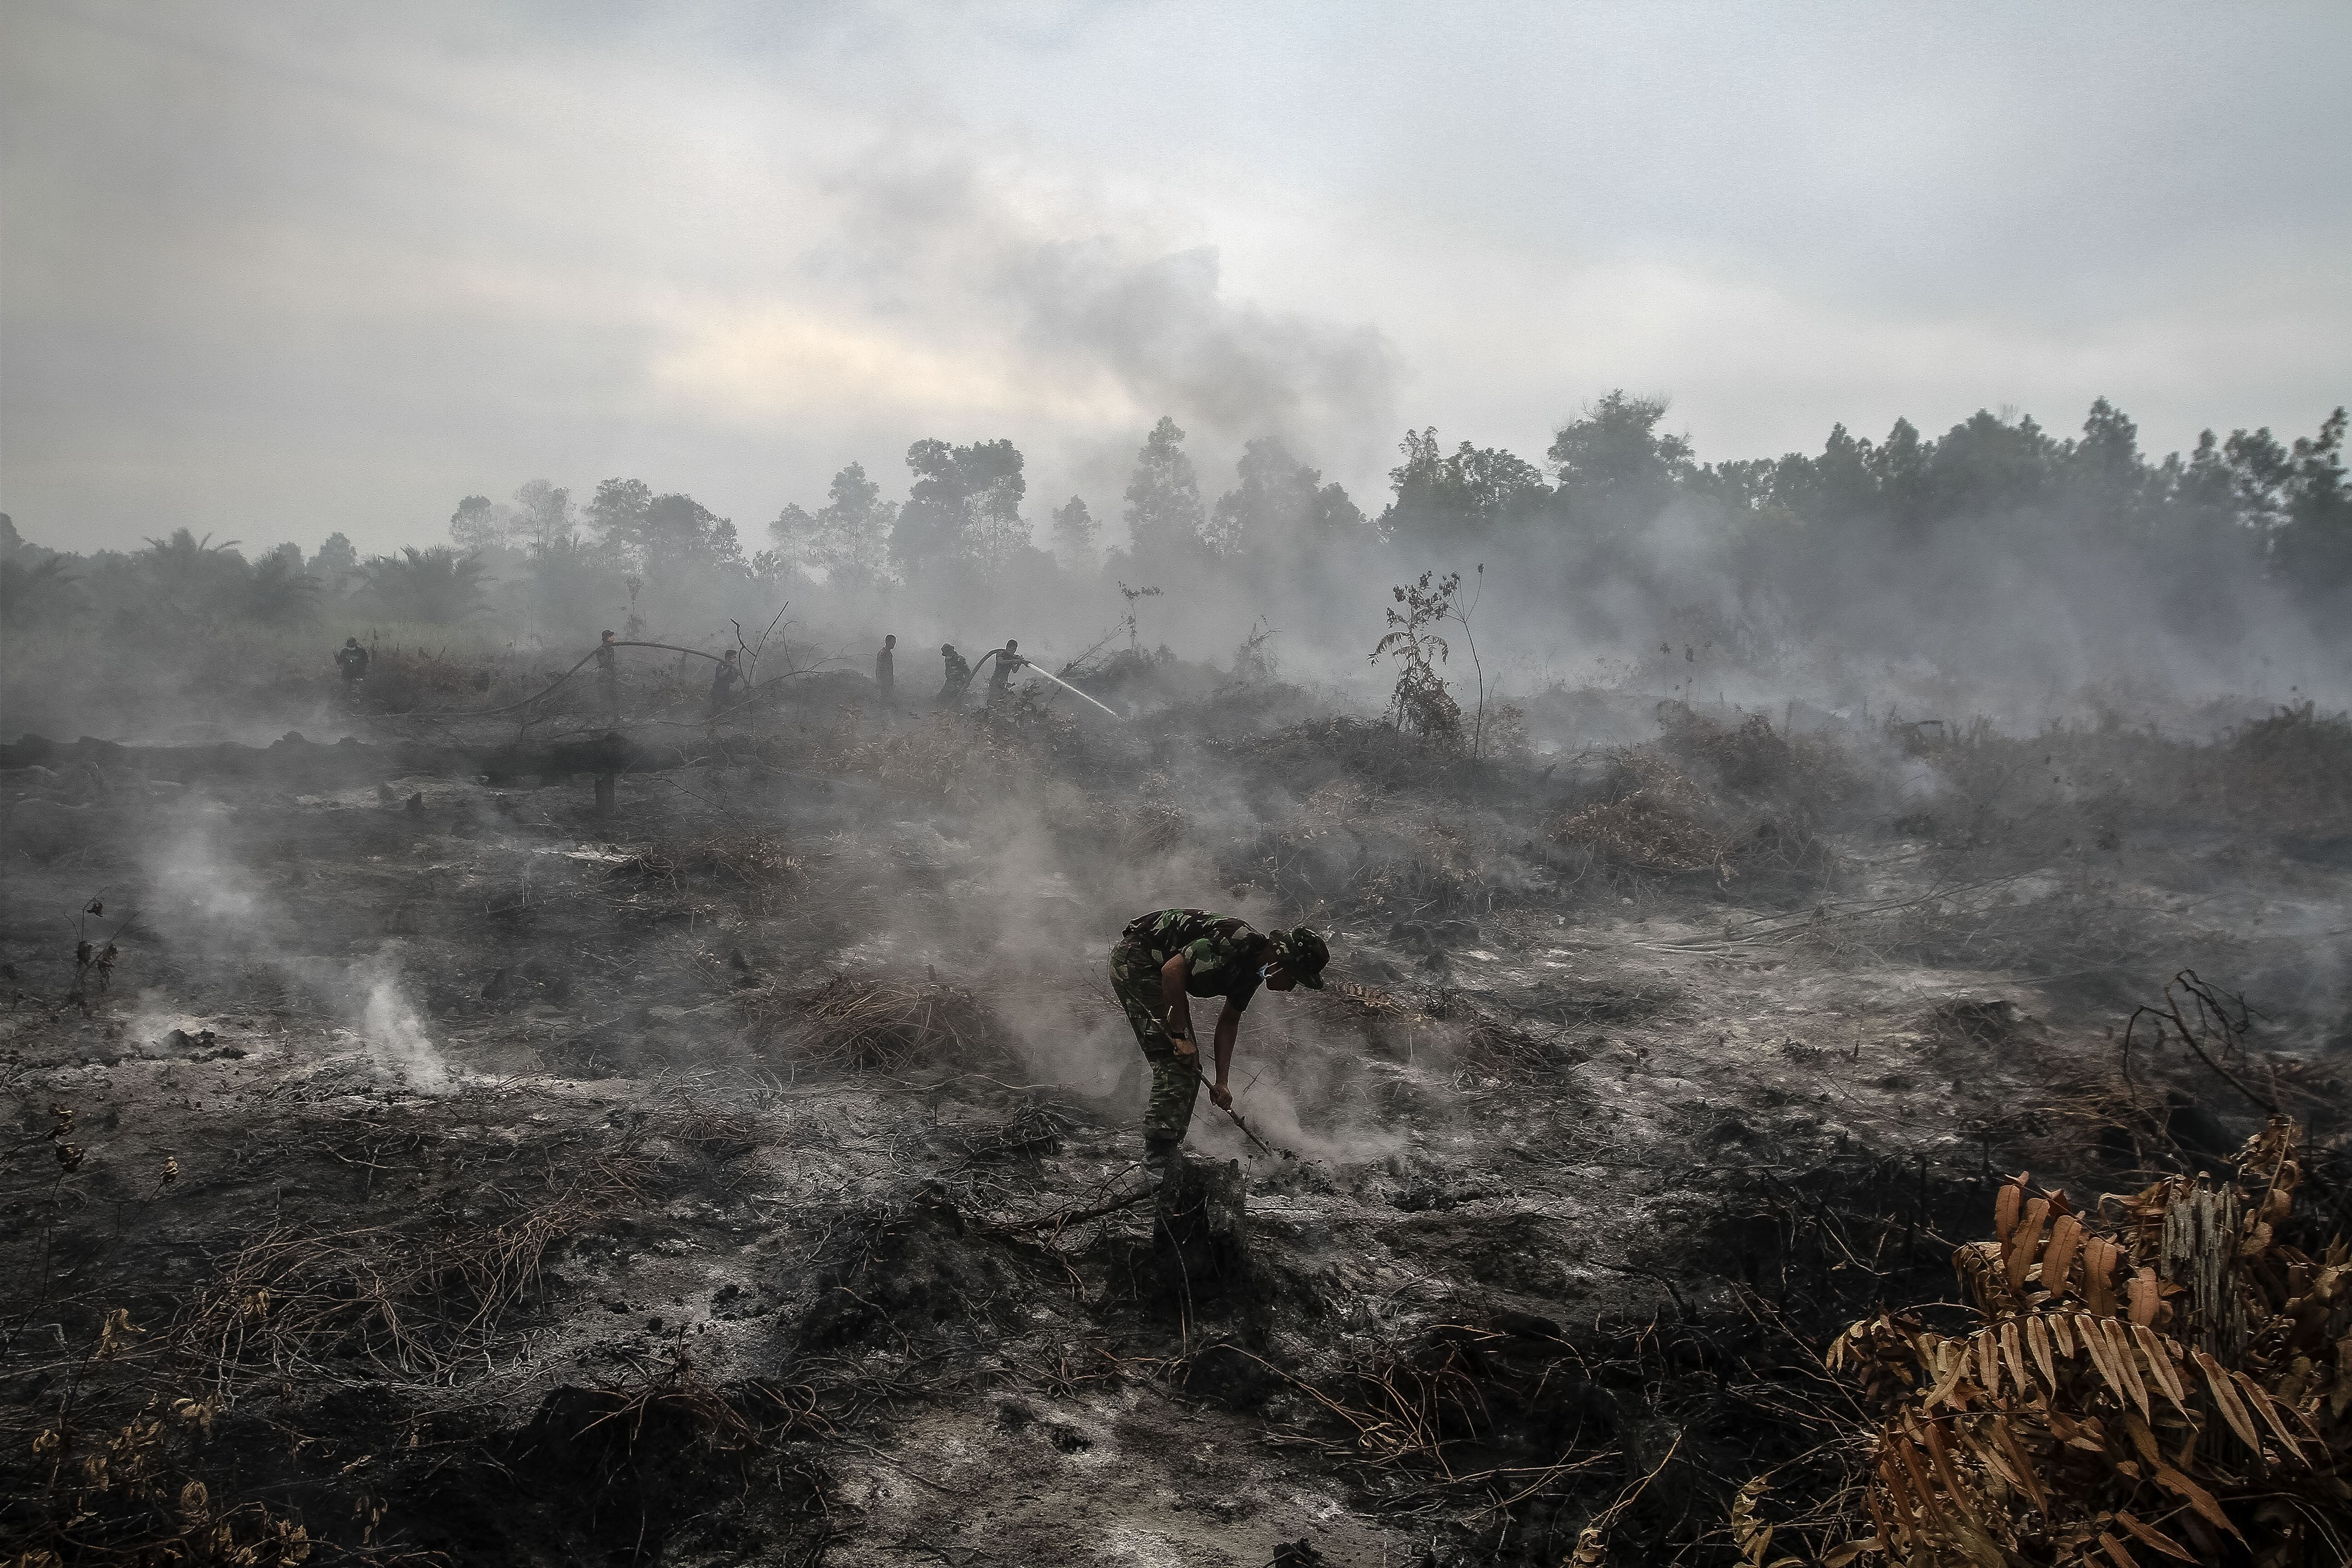 An Indonesian military personnel spray water on forest burned area at Rimbo Panjang Village, in Indonesia's Riau province, on Aug. 6, 2015